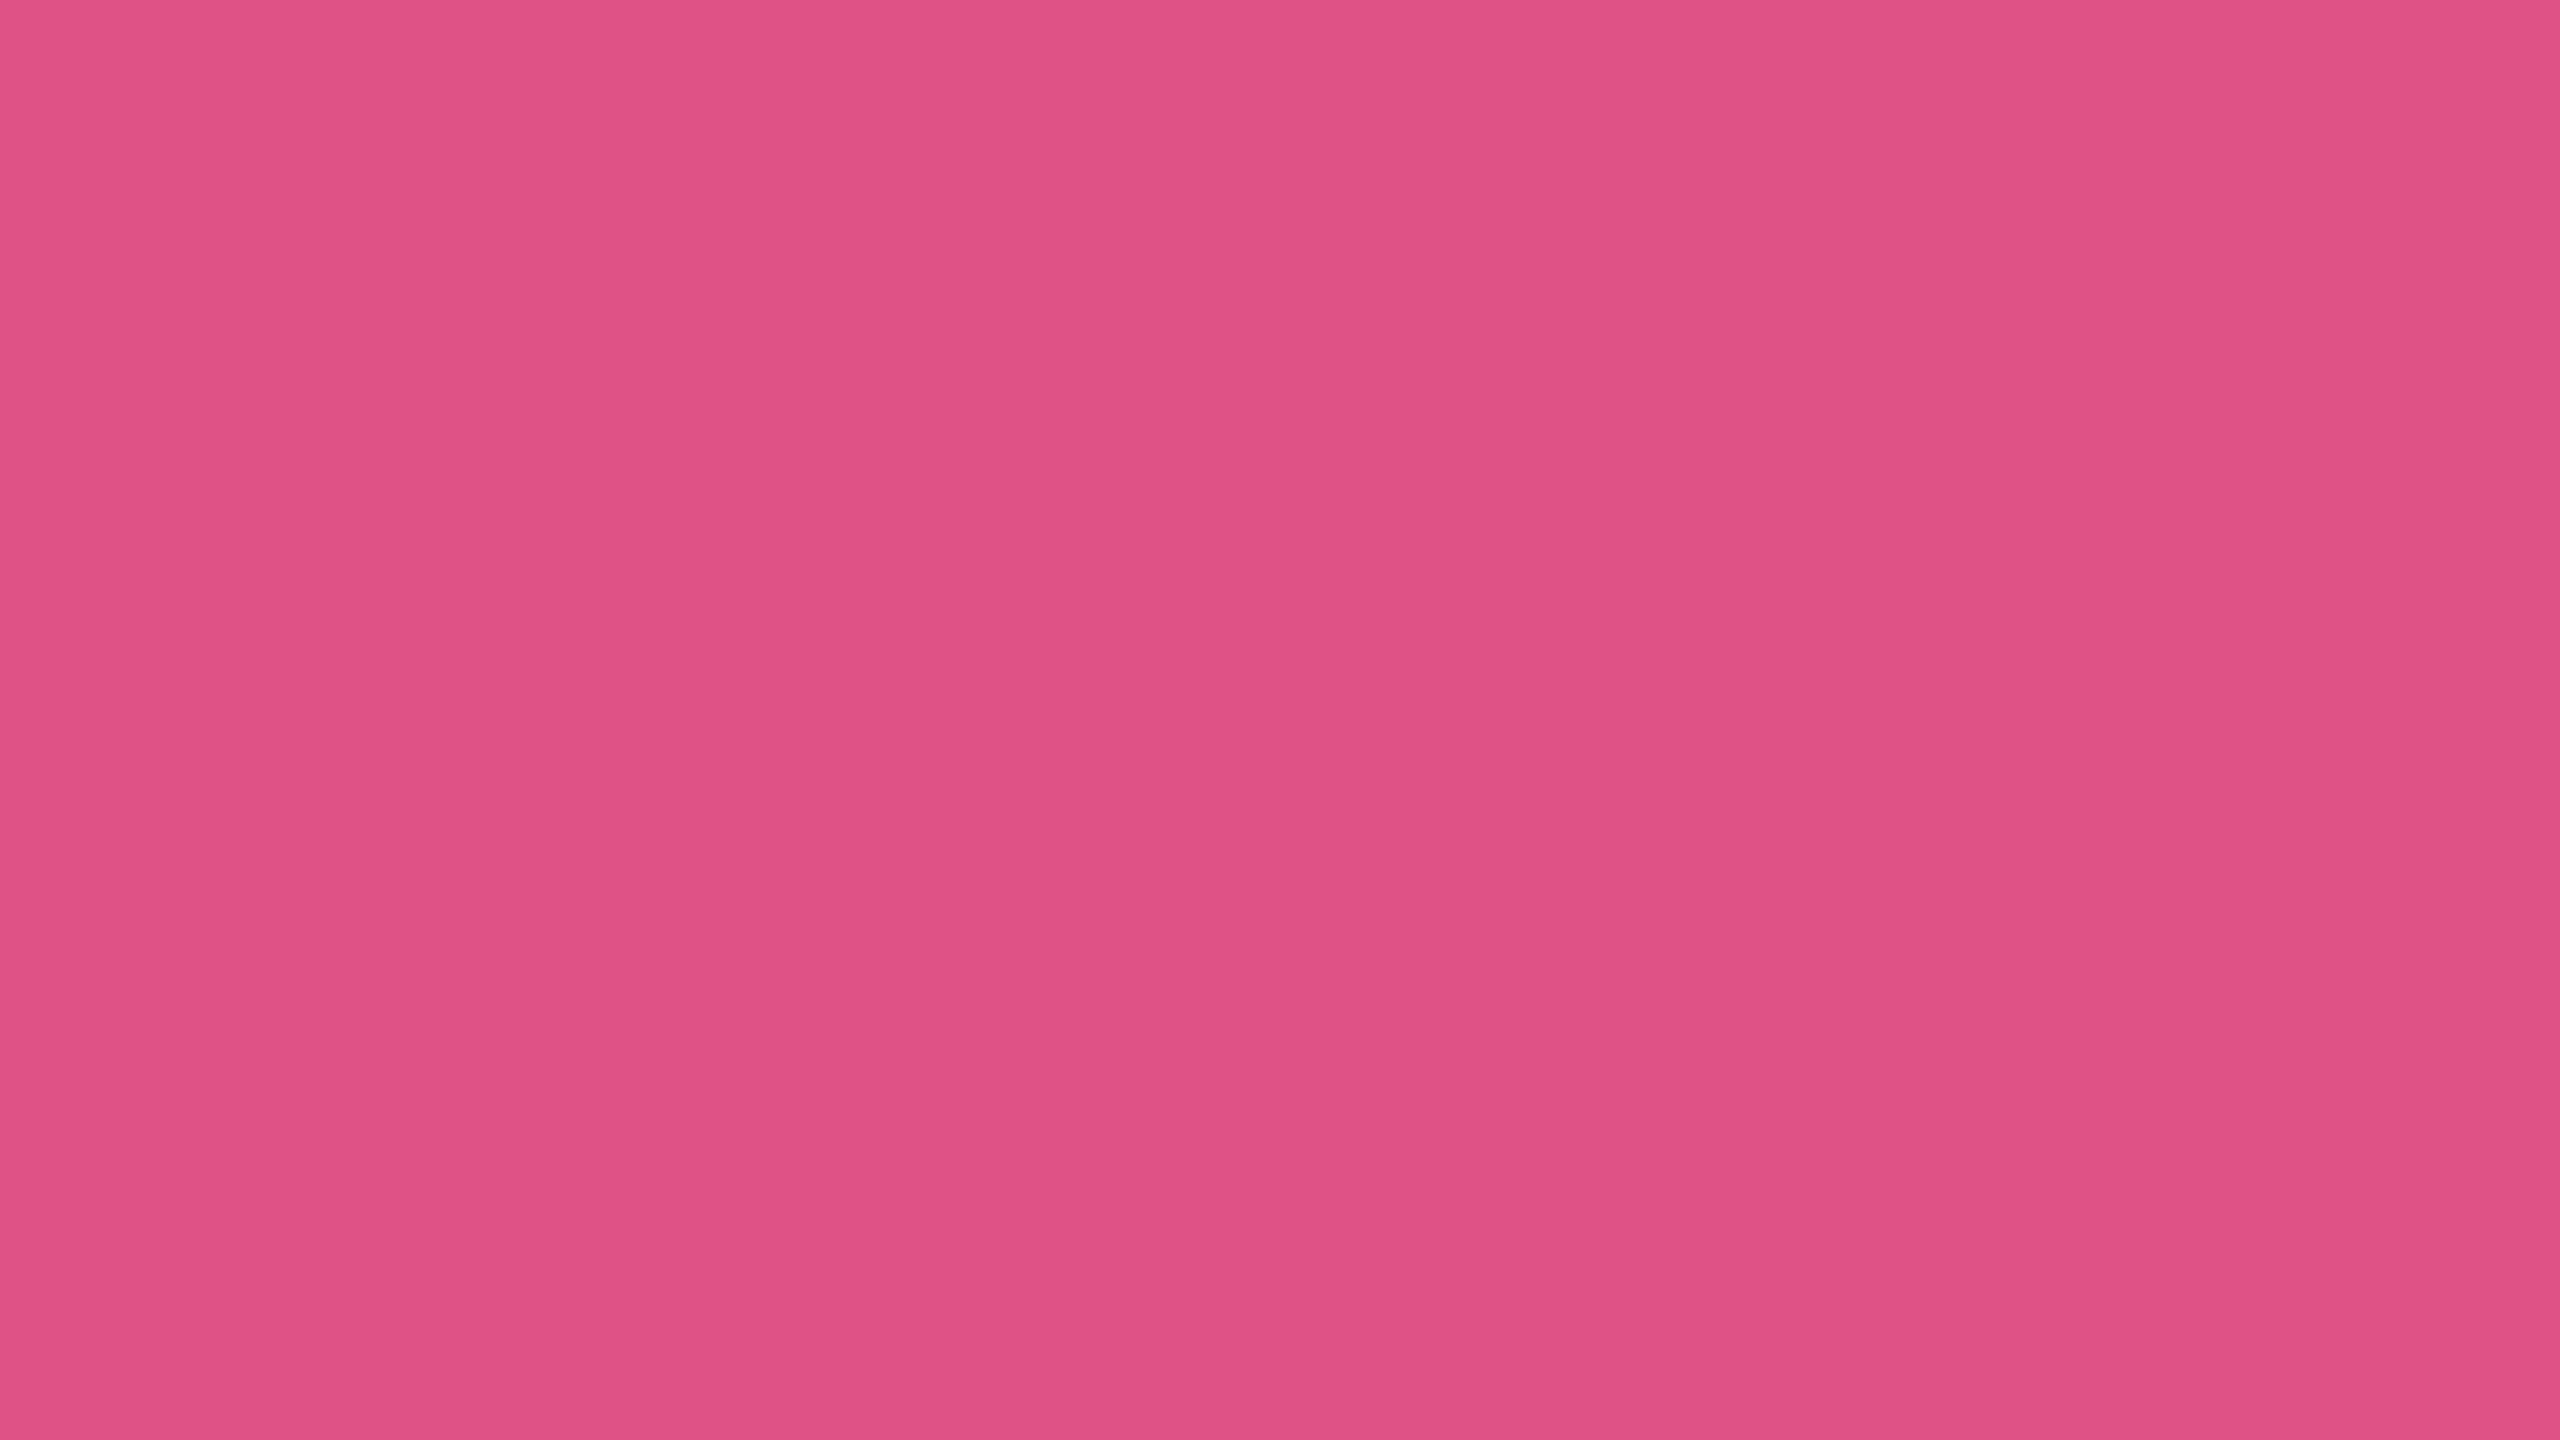 2560x1440 Fandango Pink Solid Color Background